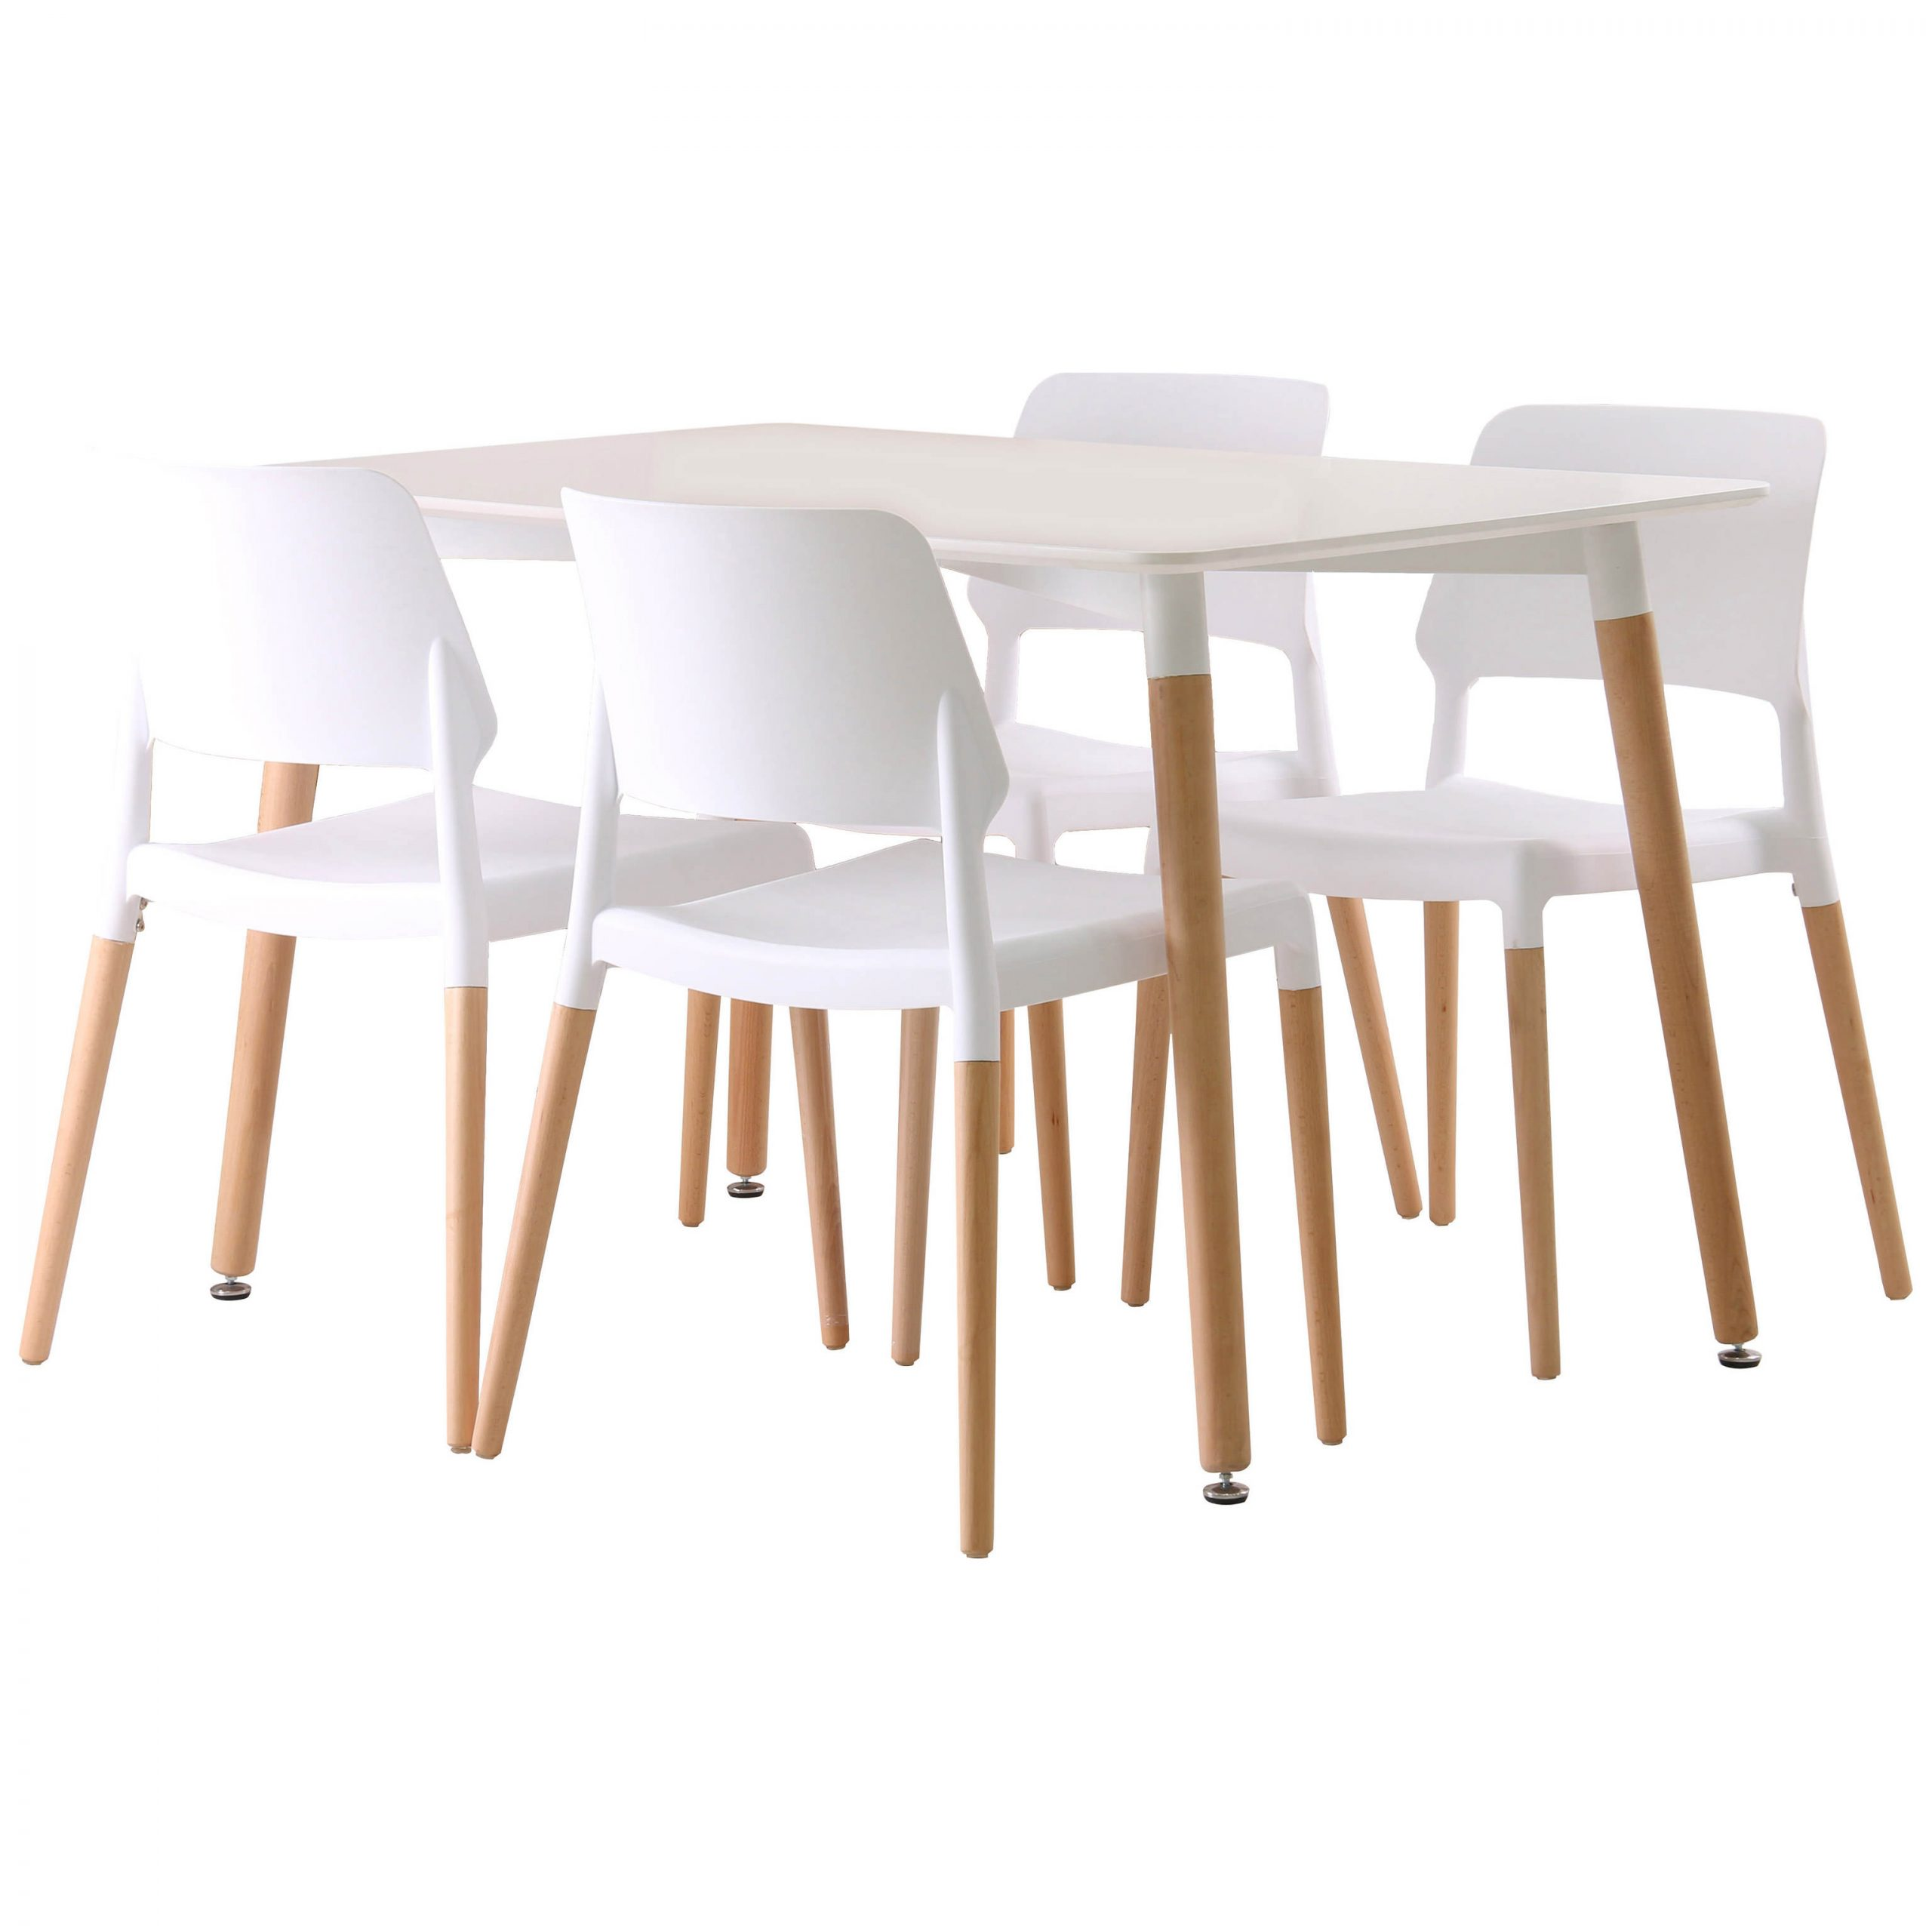 Preferred Details About Rectangle Dining Table And Chair Set With 4 Seats (View 21 of 25)